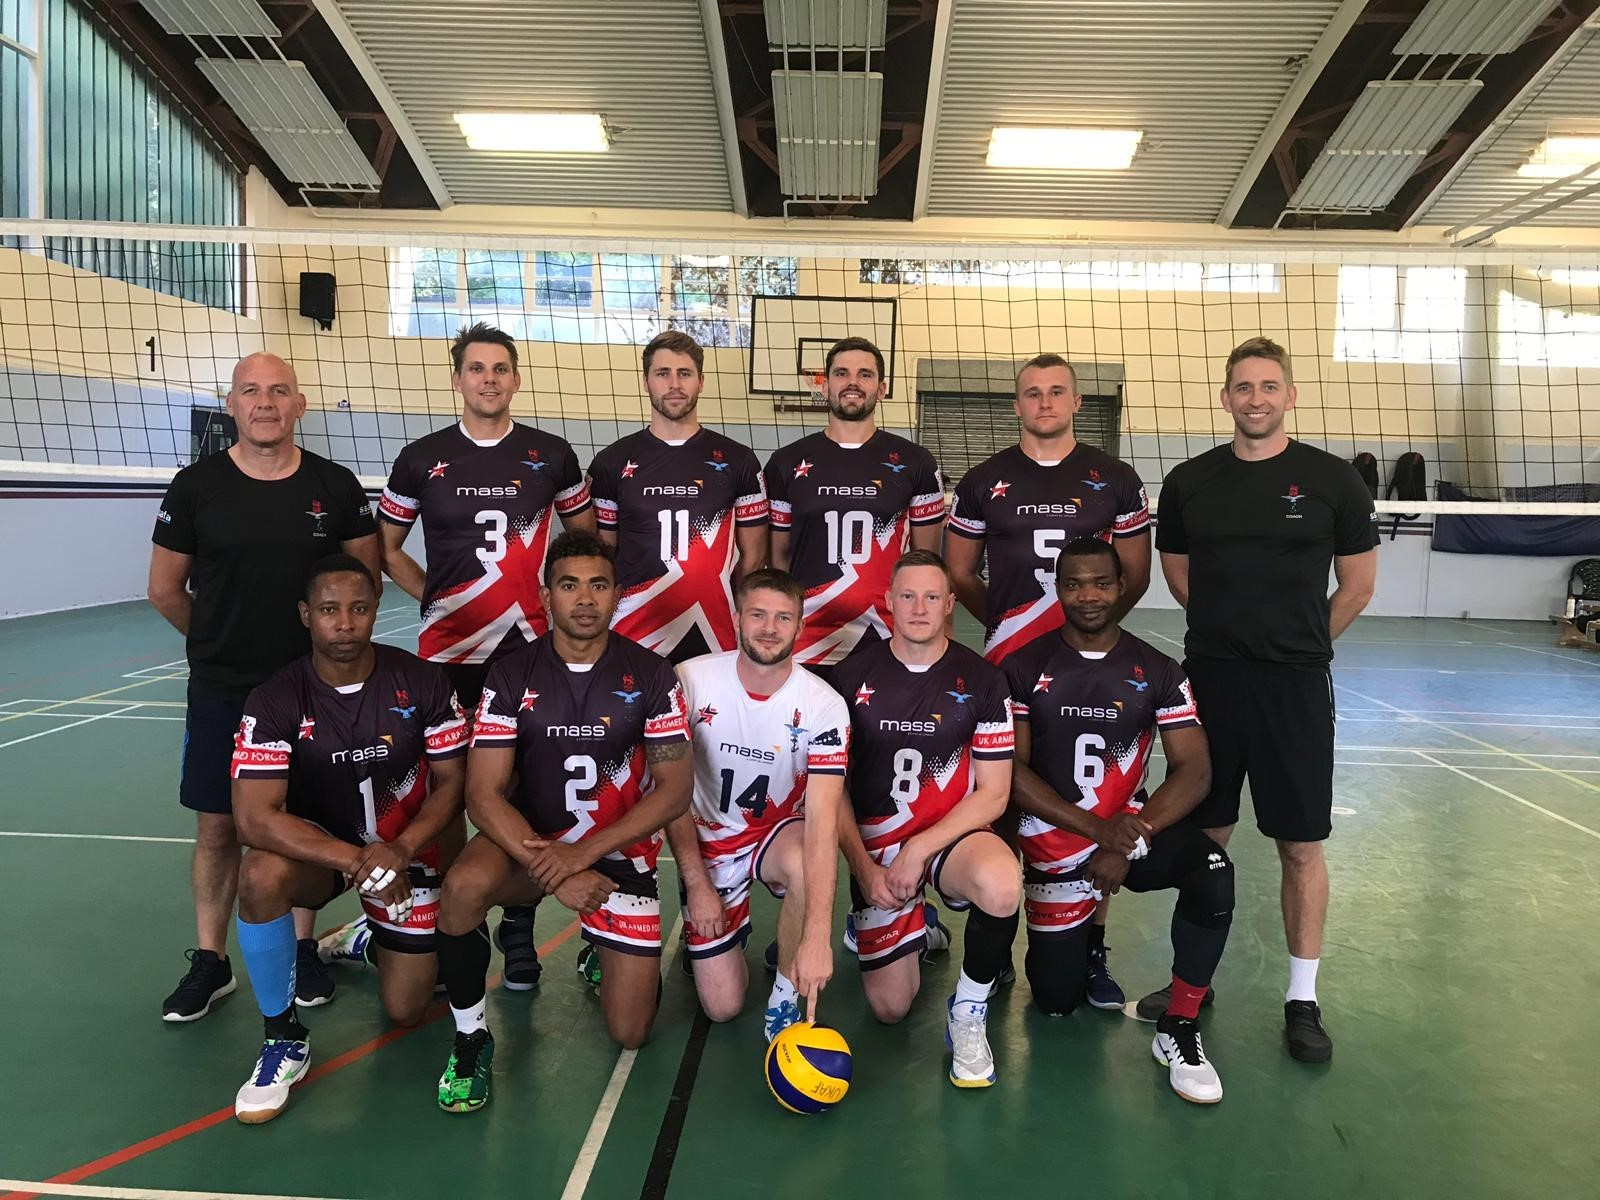 Uk Armed Forces Volleyball Mass